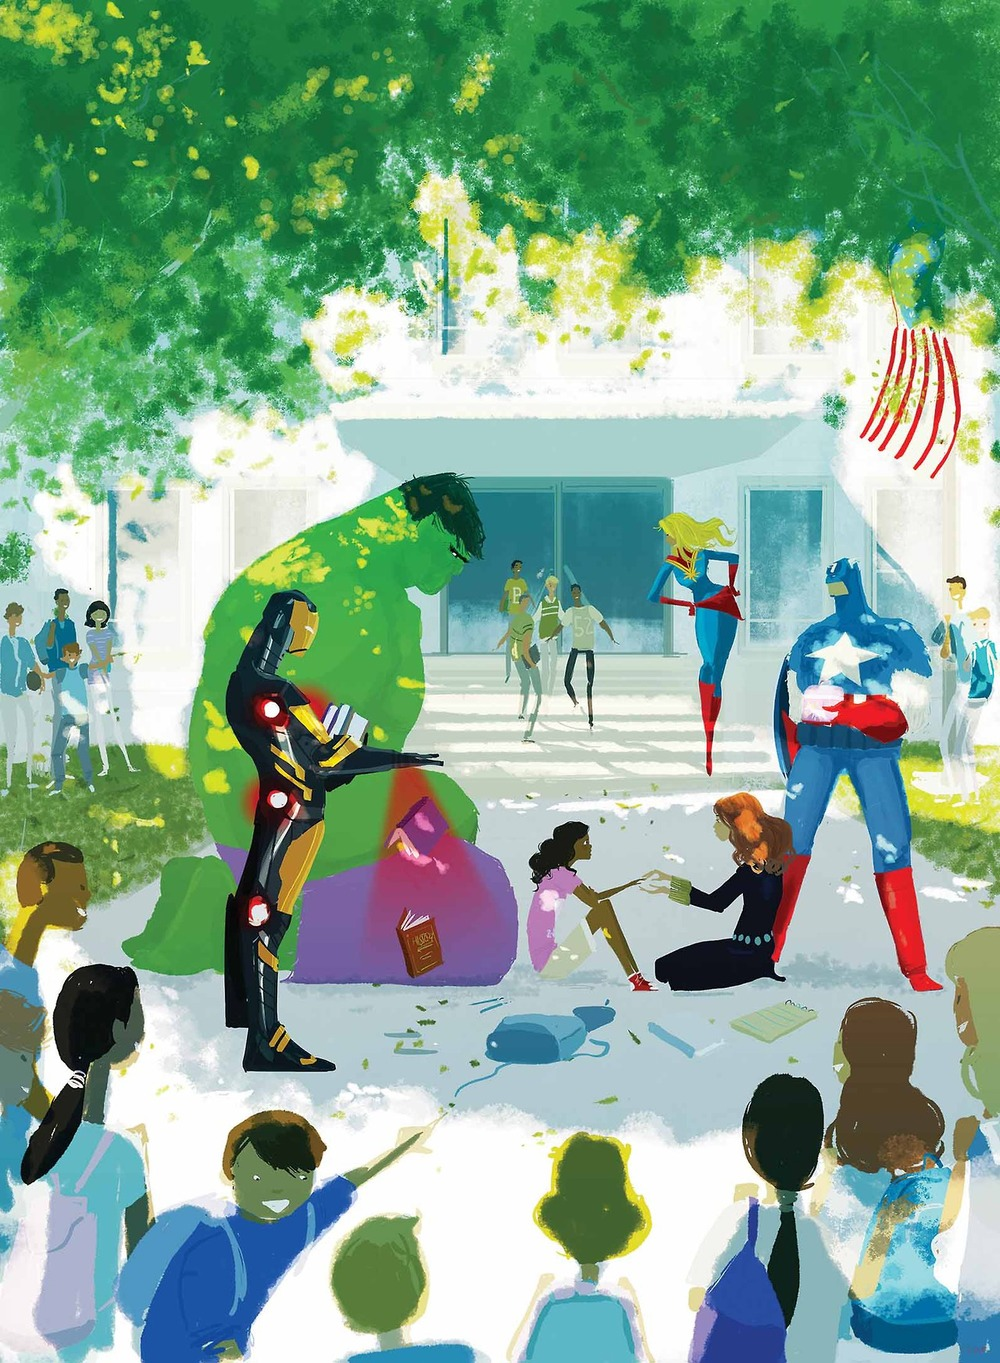 avengers-no-more-bullying-comic-art-by-by-pascal-campion